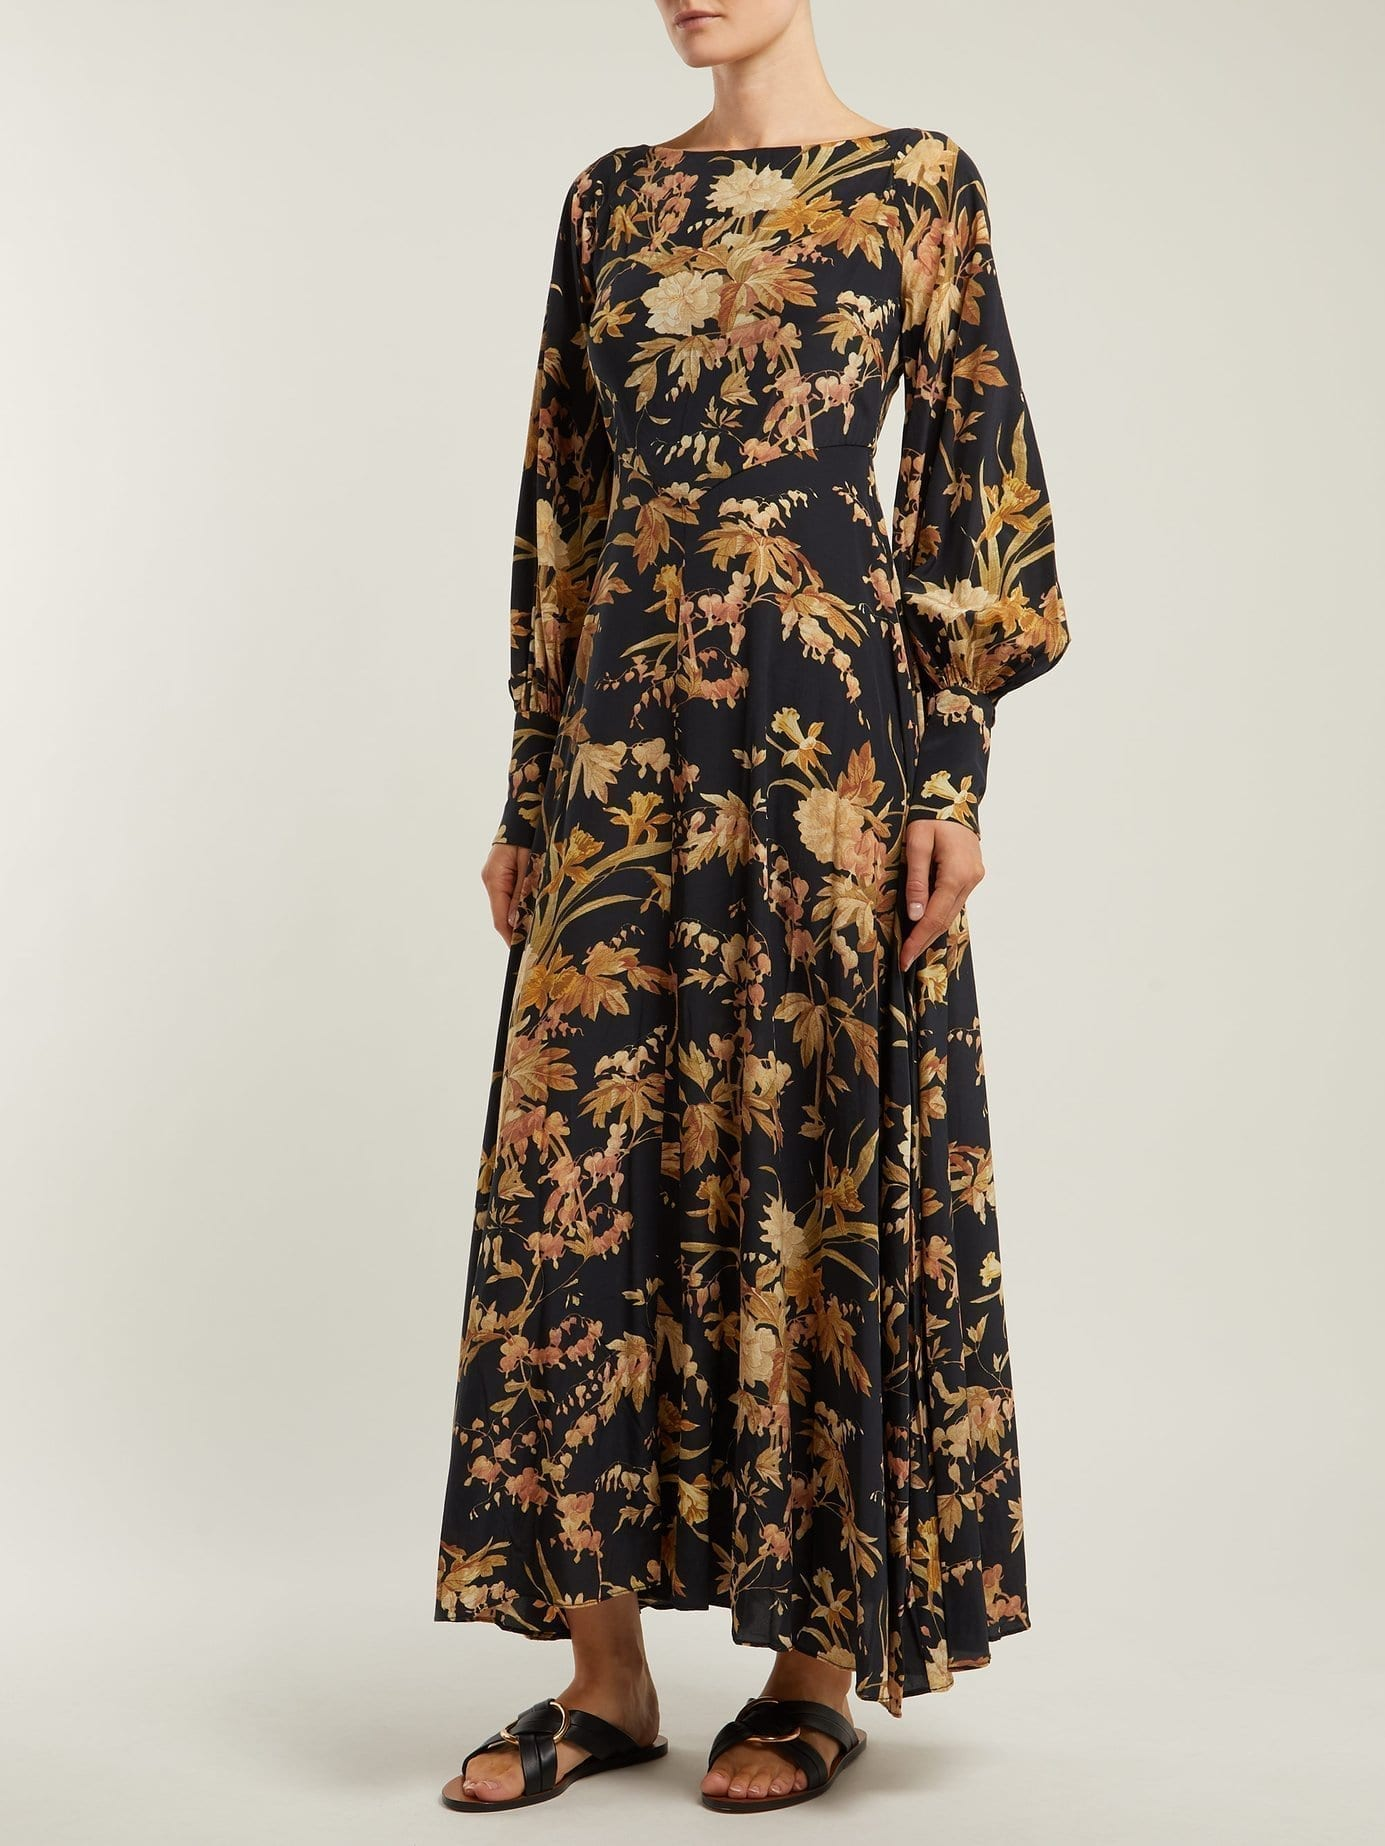 ZIMMERMANN Basque Silk Blend Black / Floral Print Dress